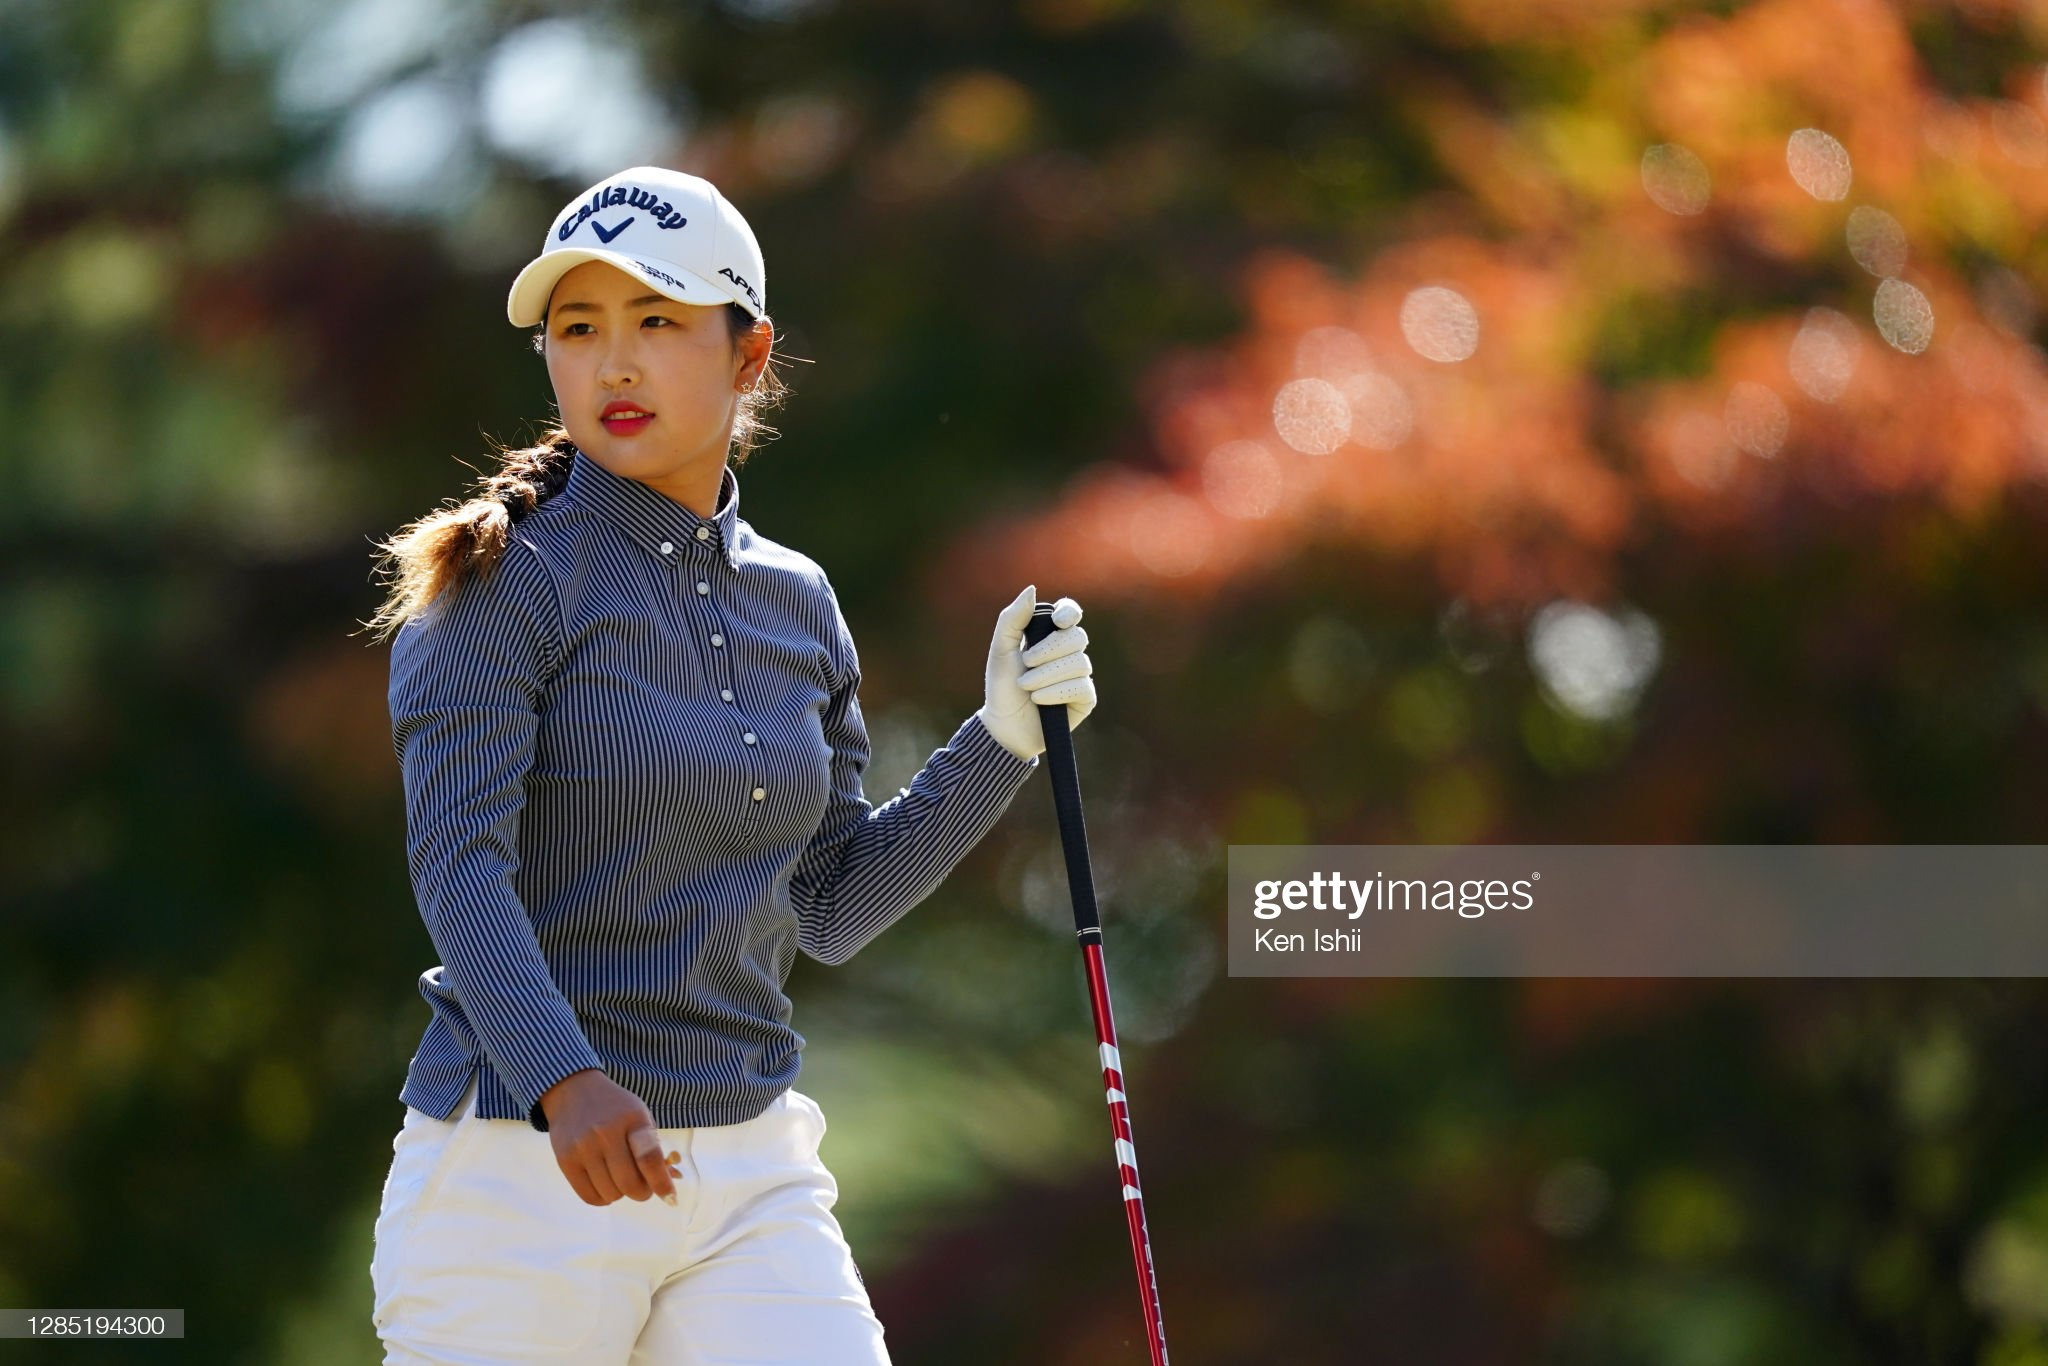 https://media.gettyimages.com/photos/hana-lee-of-south-korea-is-seen-on-the-4th-tee-during-the-final-round-picture-id1285194300?s=2048x2048